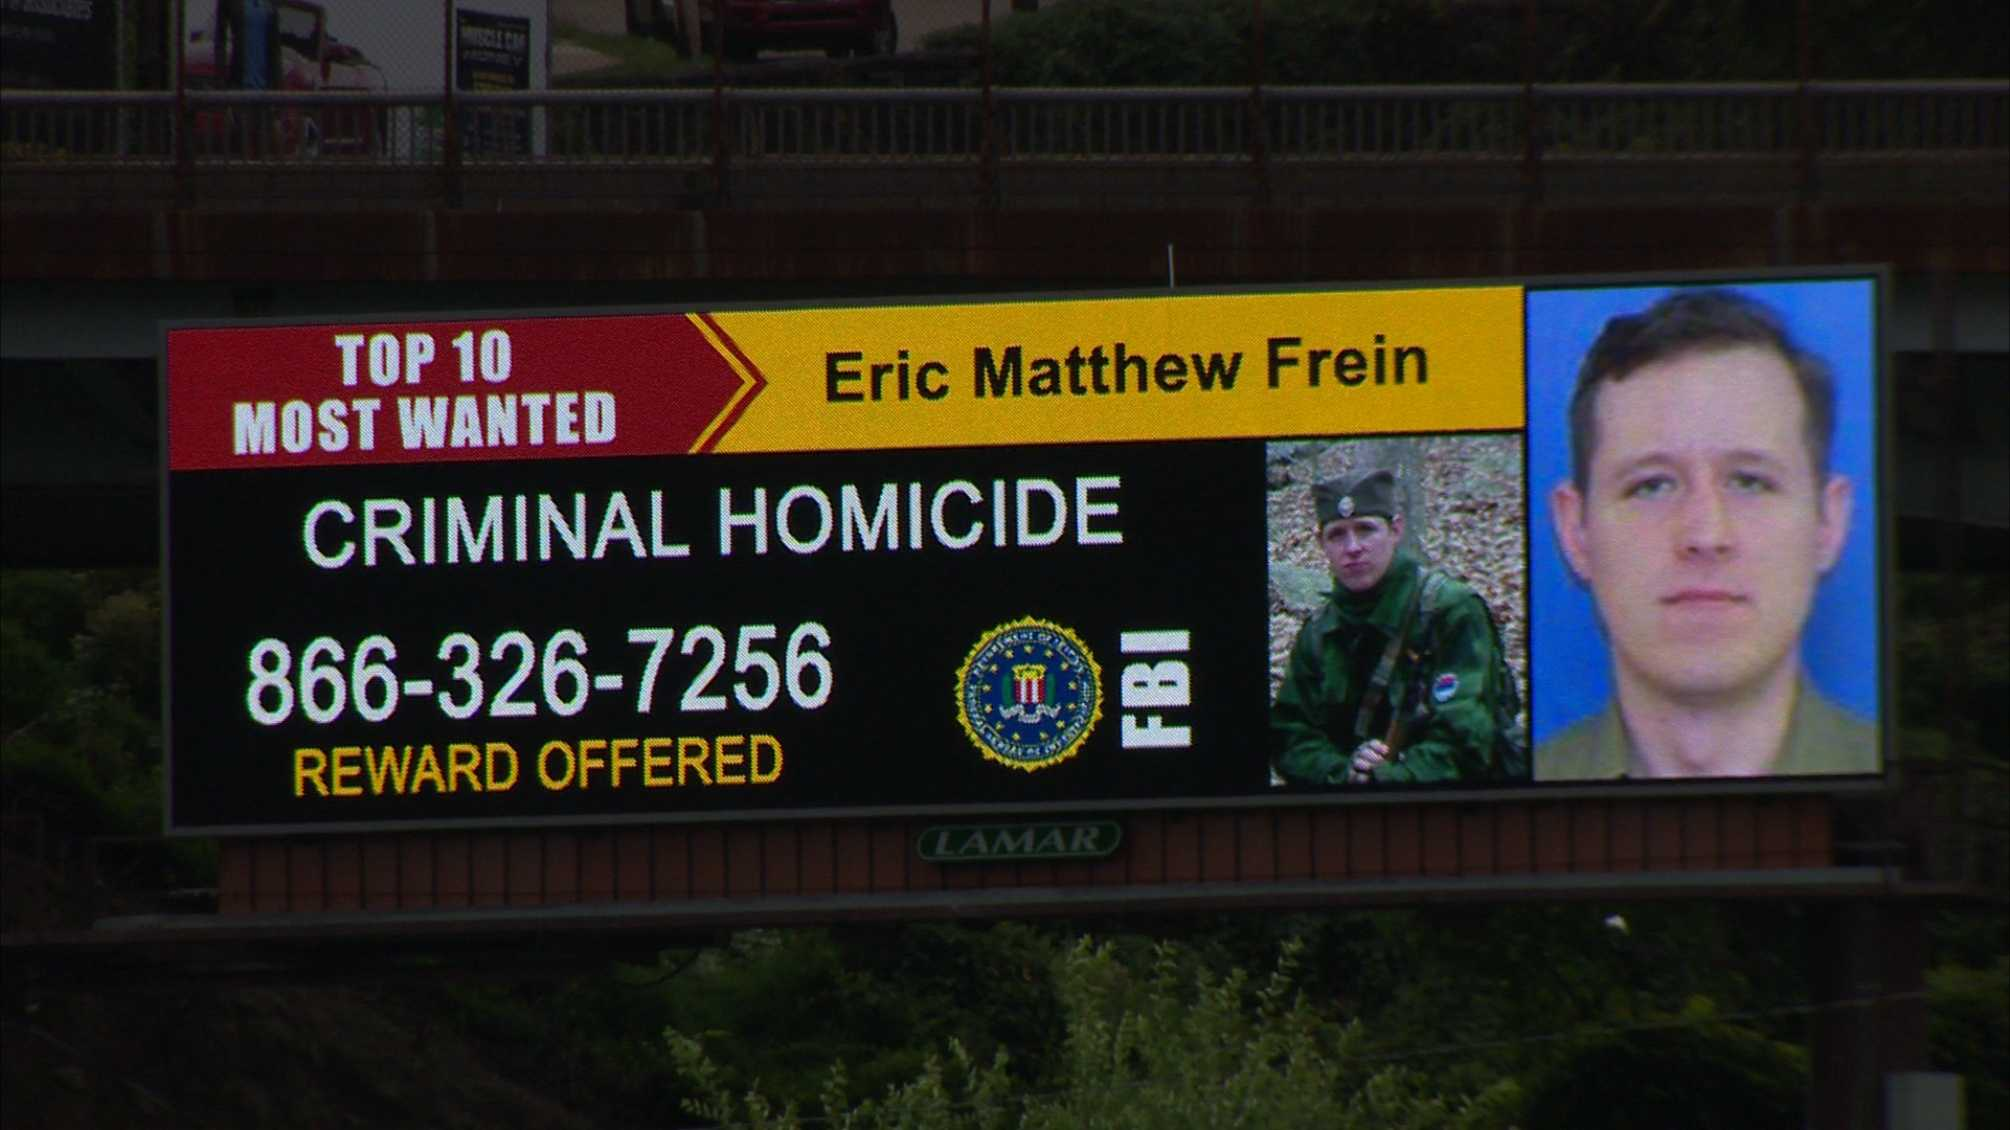 Eric Frein was added to the FBI's most wanted list. A large reward is being offered for his capture.